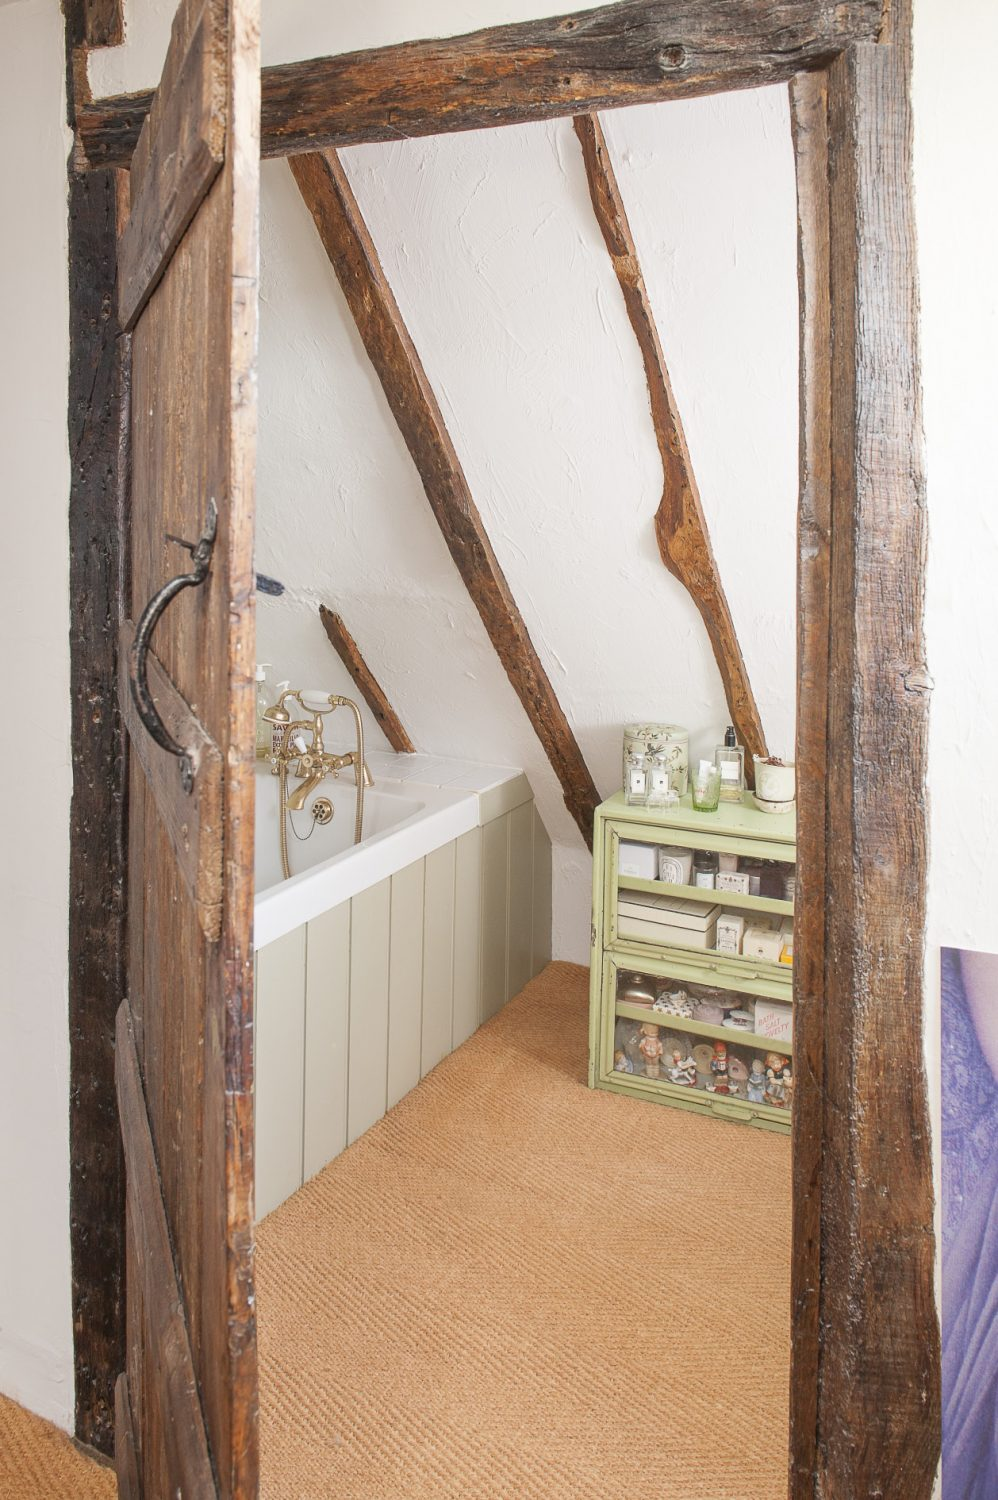 The little en suite in the eaves of the house